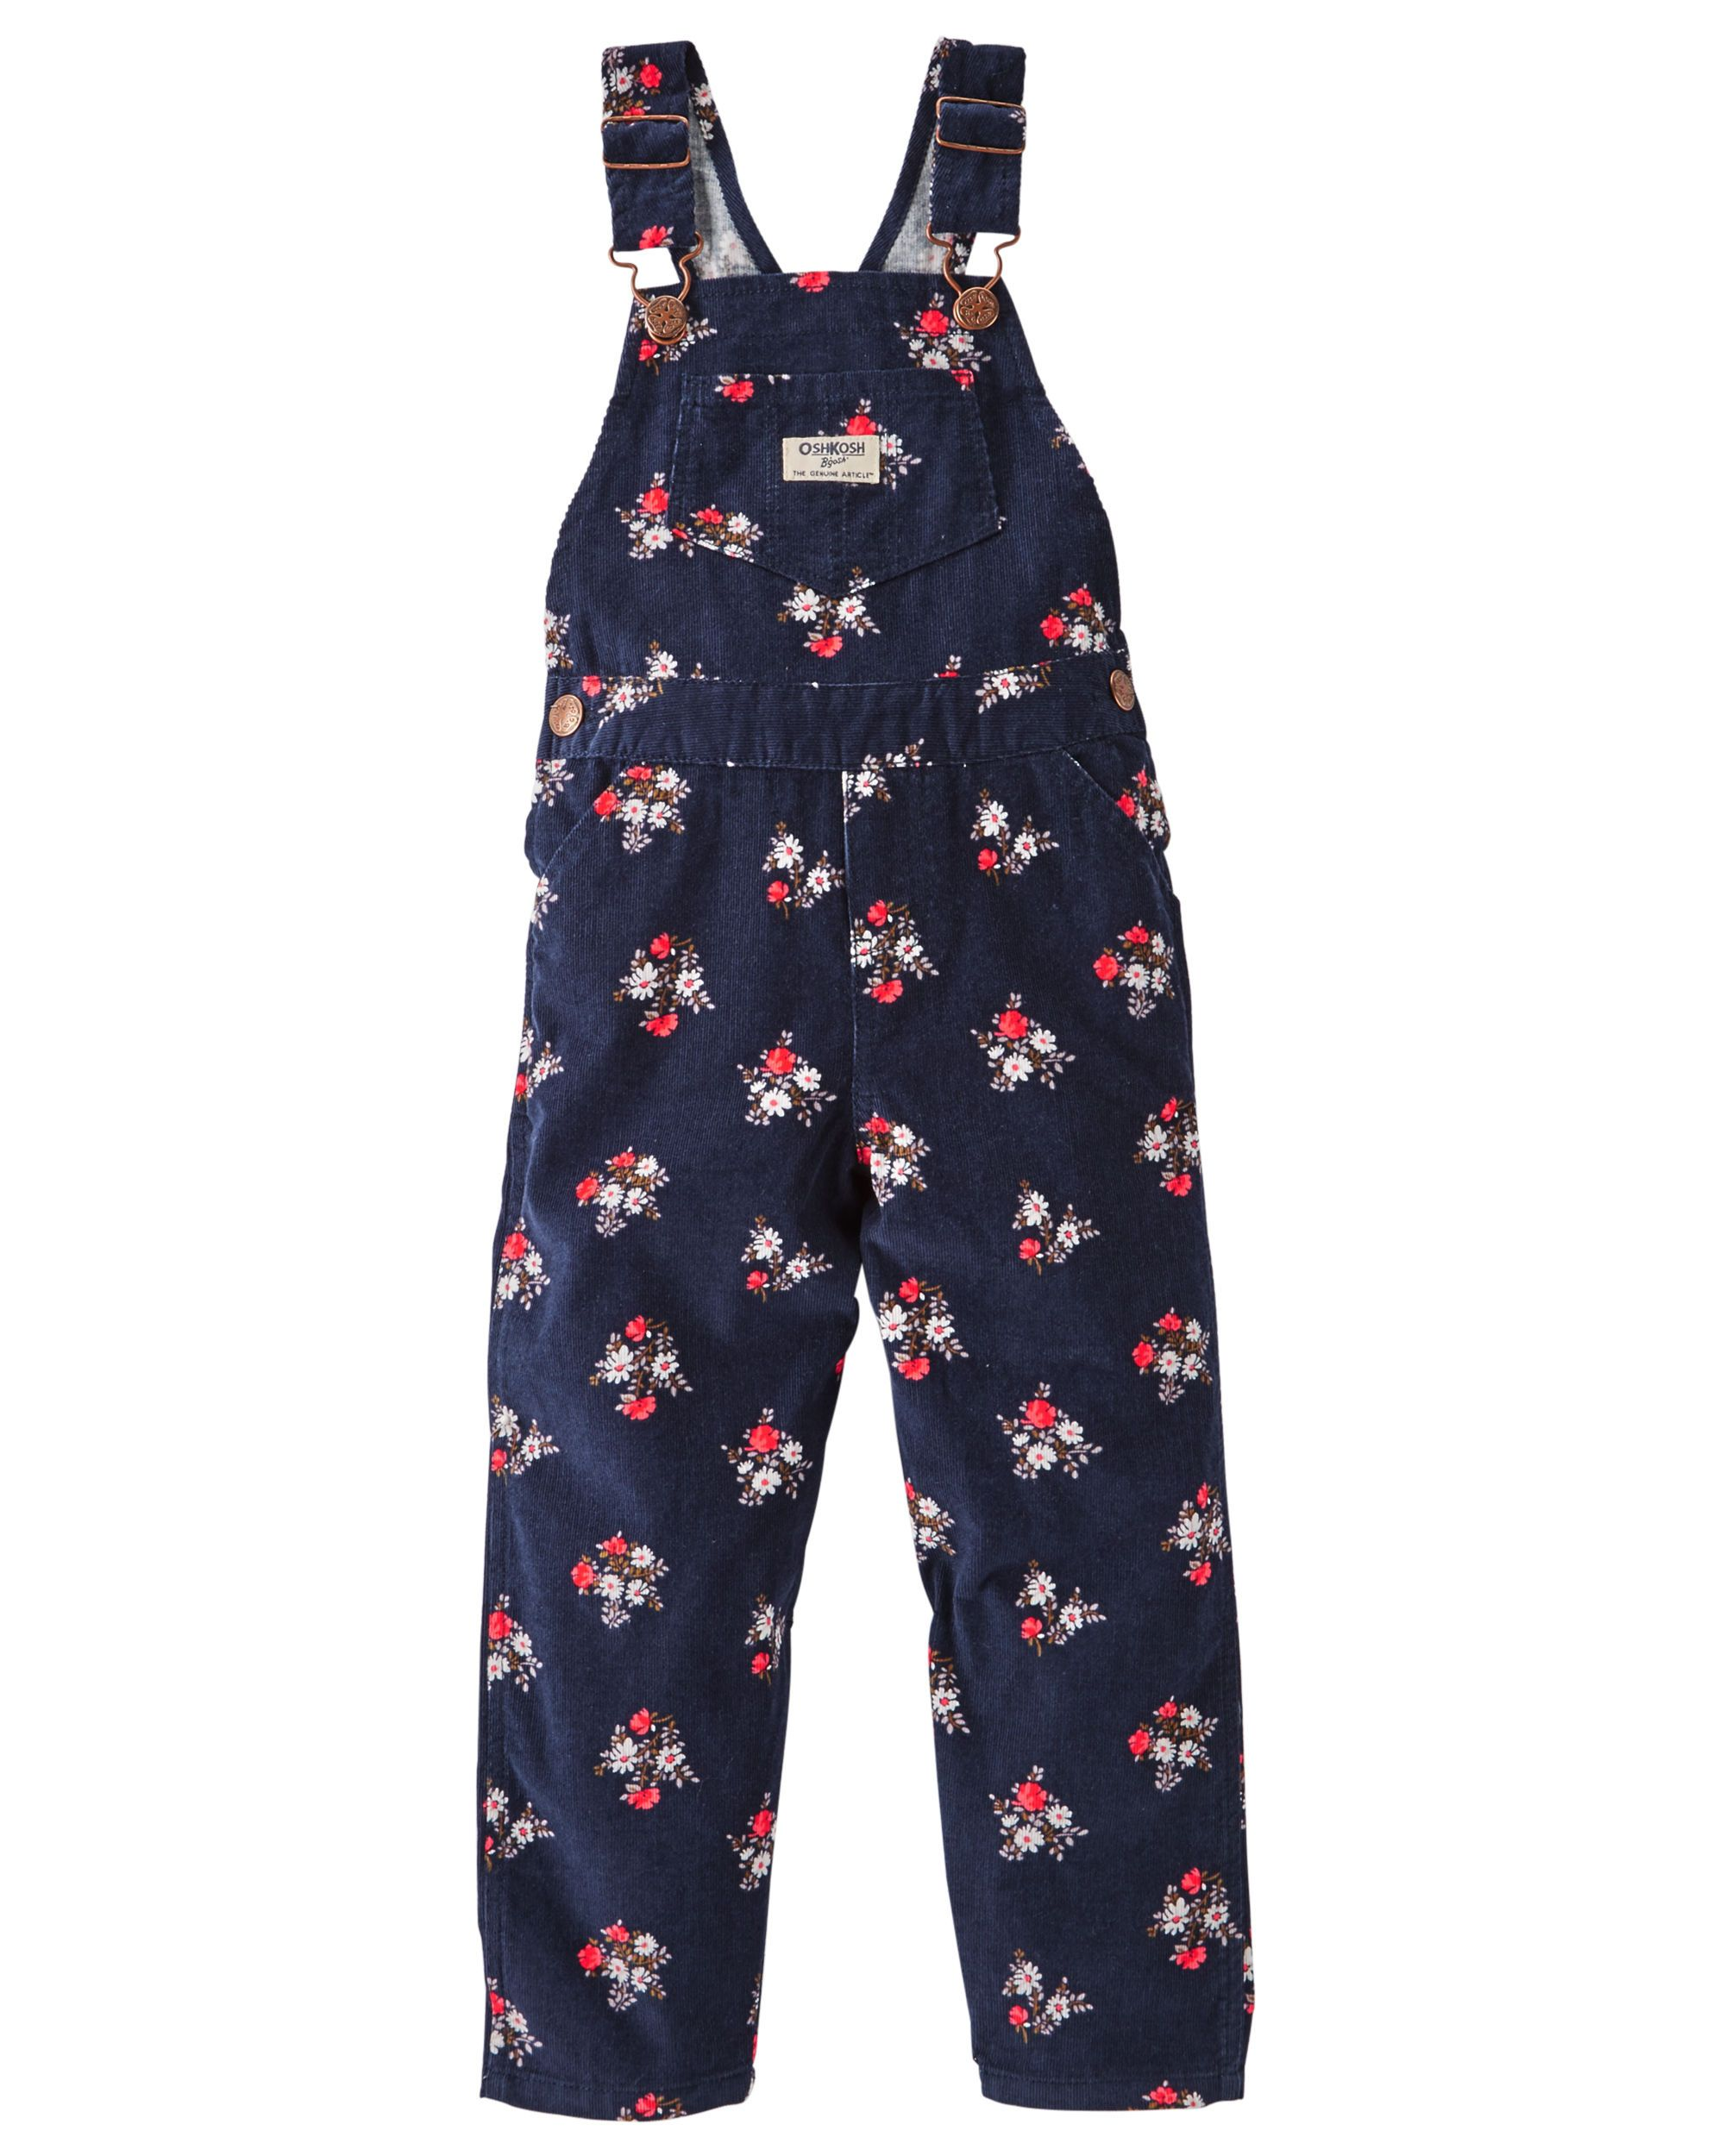 a67bc615132 Baby Girl Floral Corduroy Overalls from OshKosh B gosh. Shop clothing    accessories from a trusted name in kids